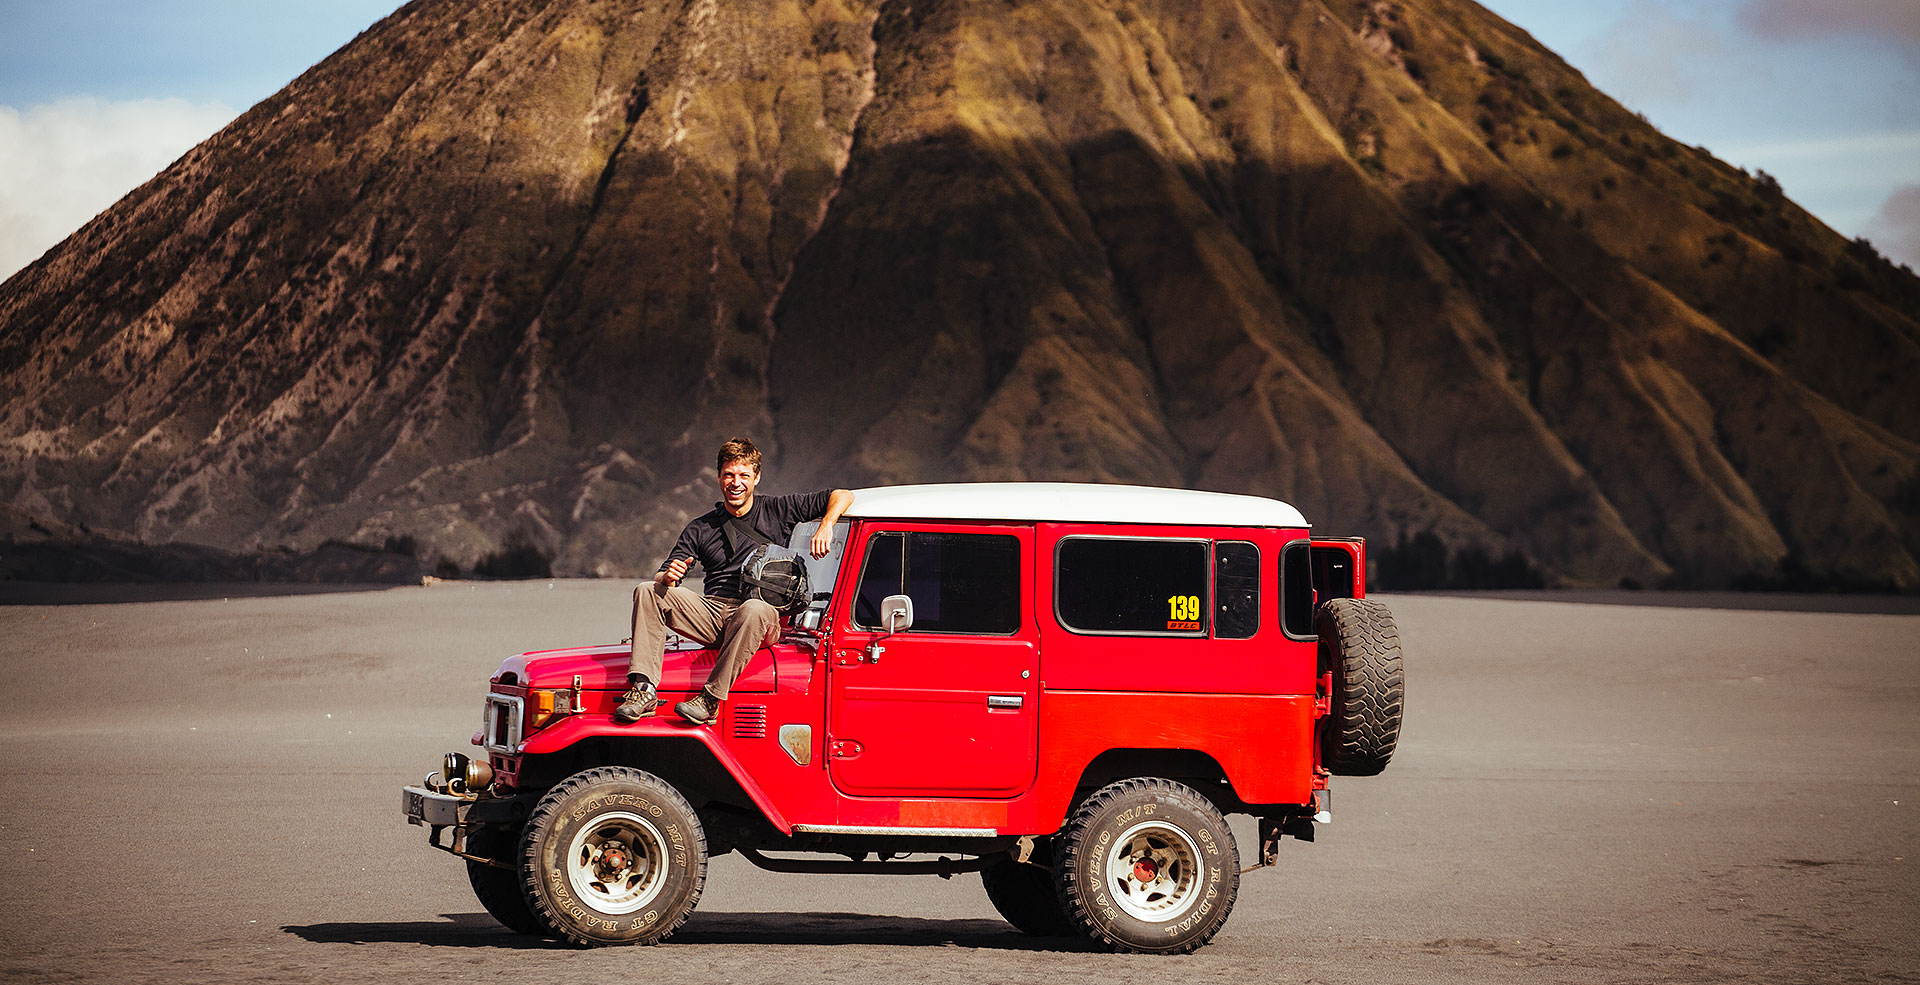 Vintage Land Cruiser at Mount Bromo, Java